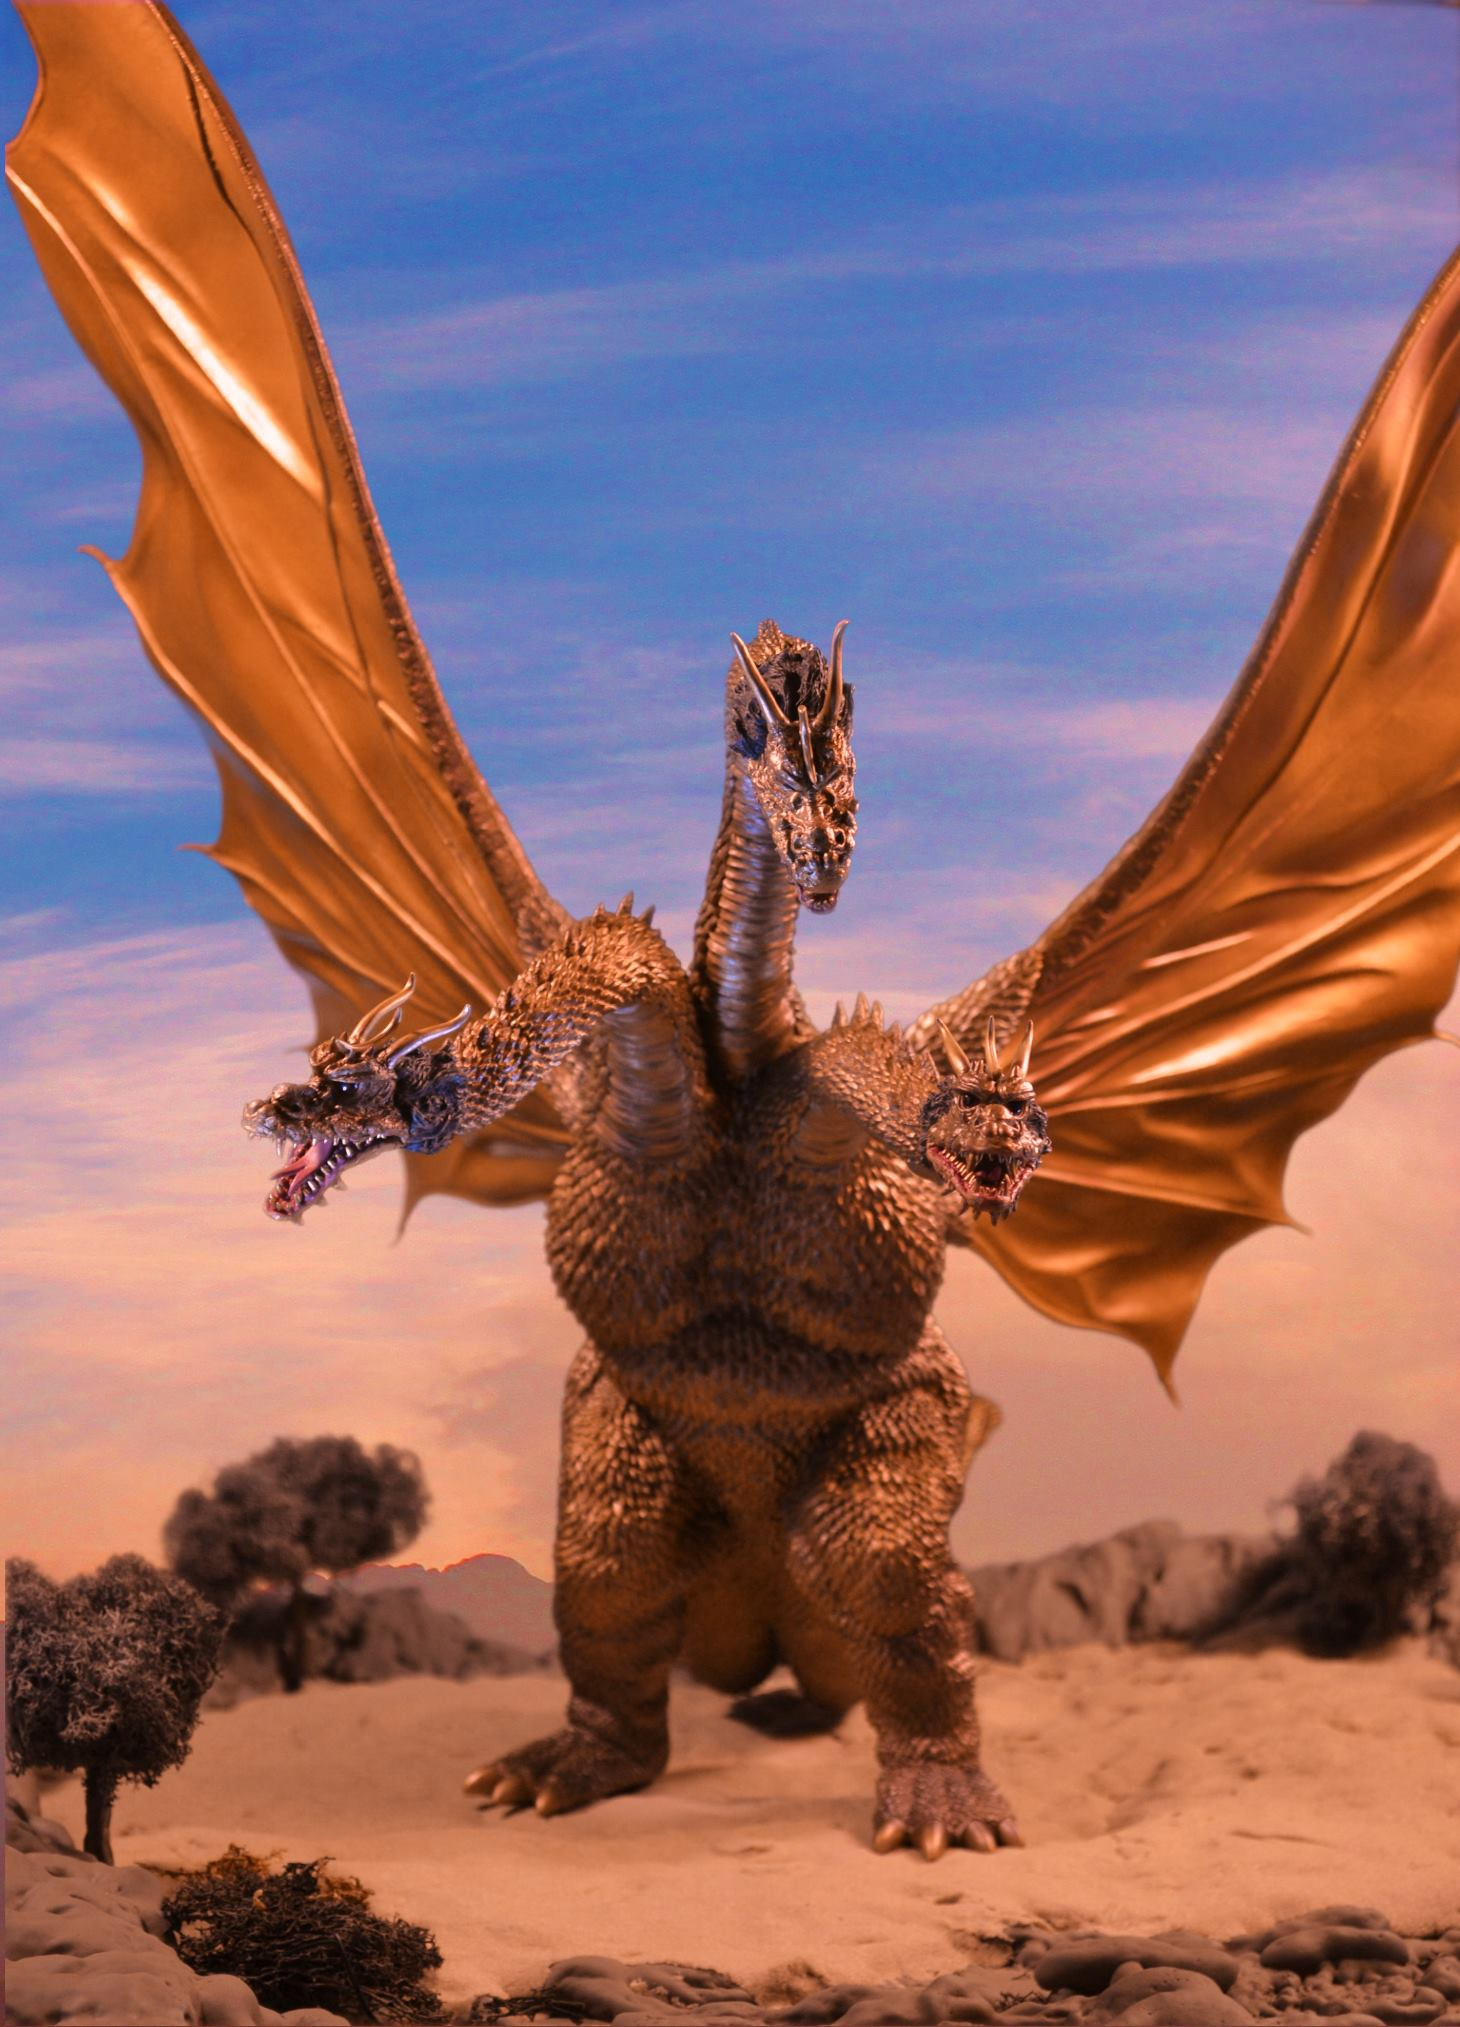 X-Plus King Ghidorah vinyl figure photo by Sam Torres.